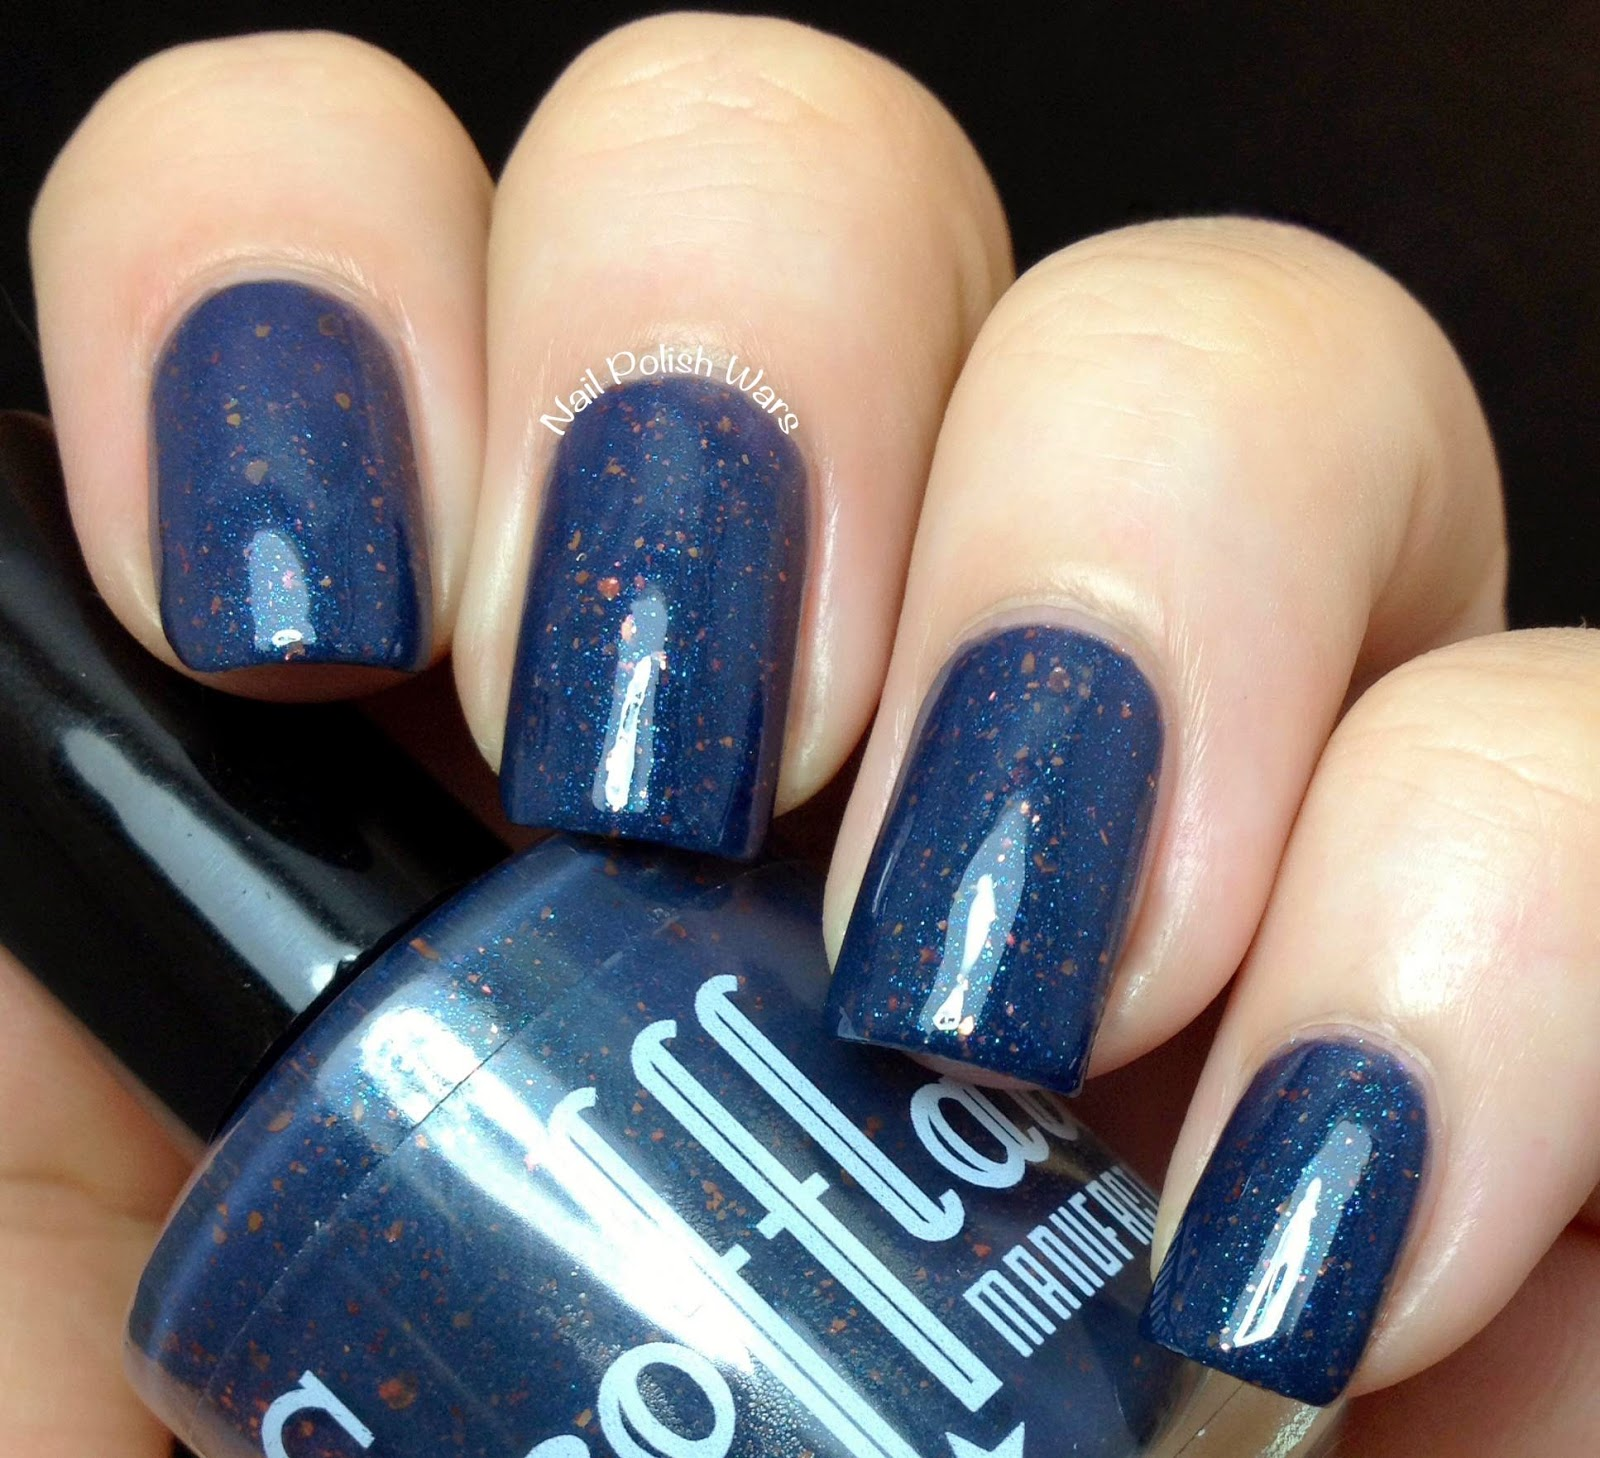 Scofflaw Nail Varnish